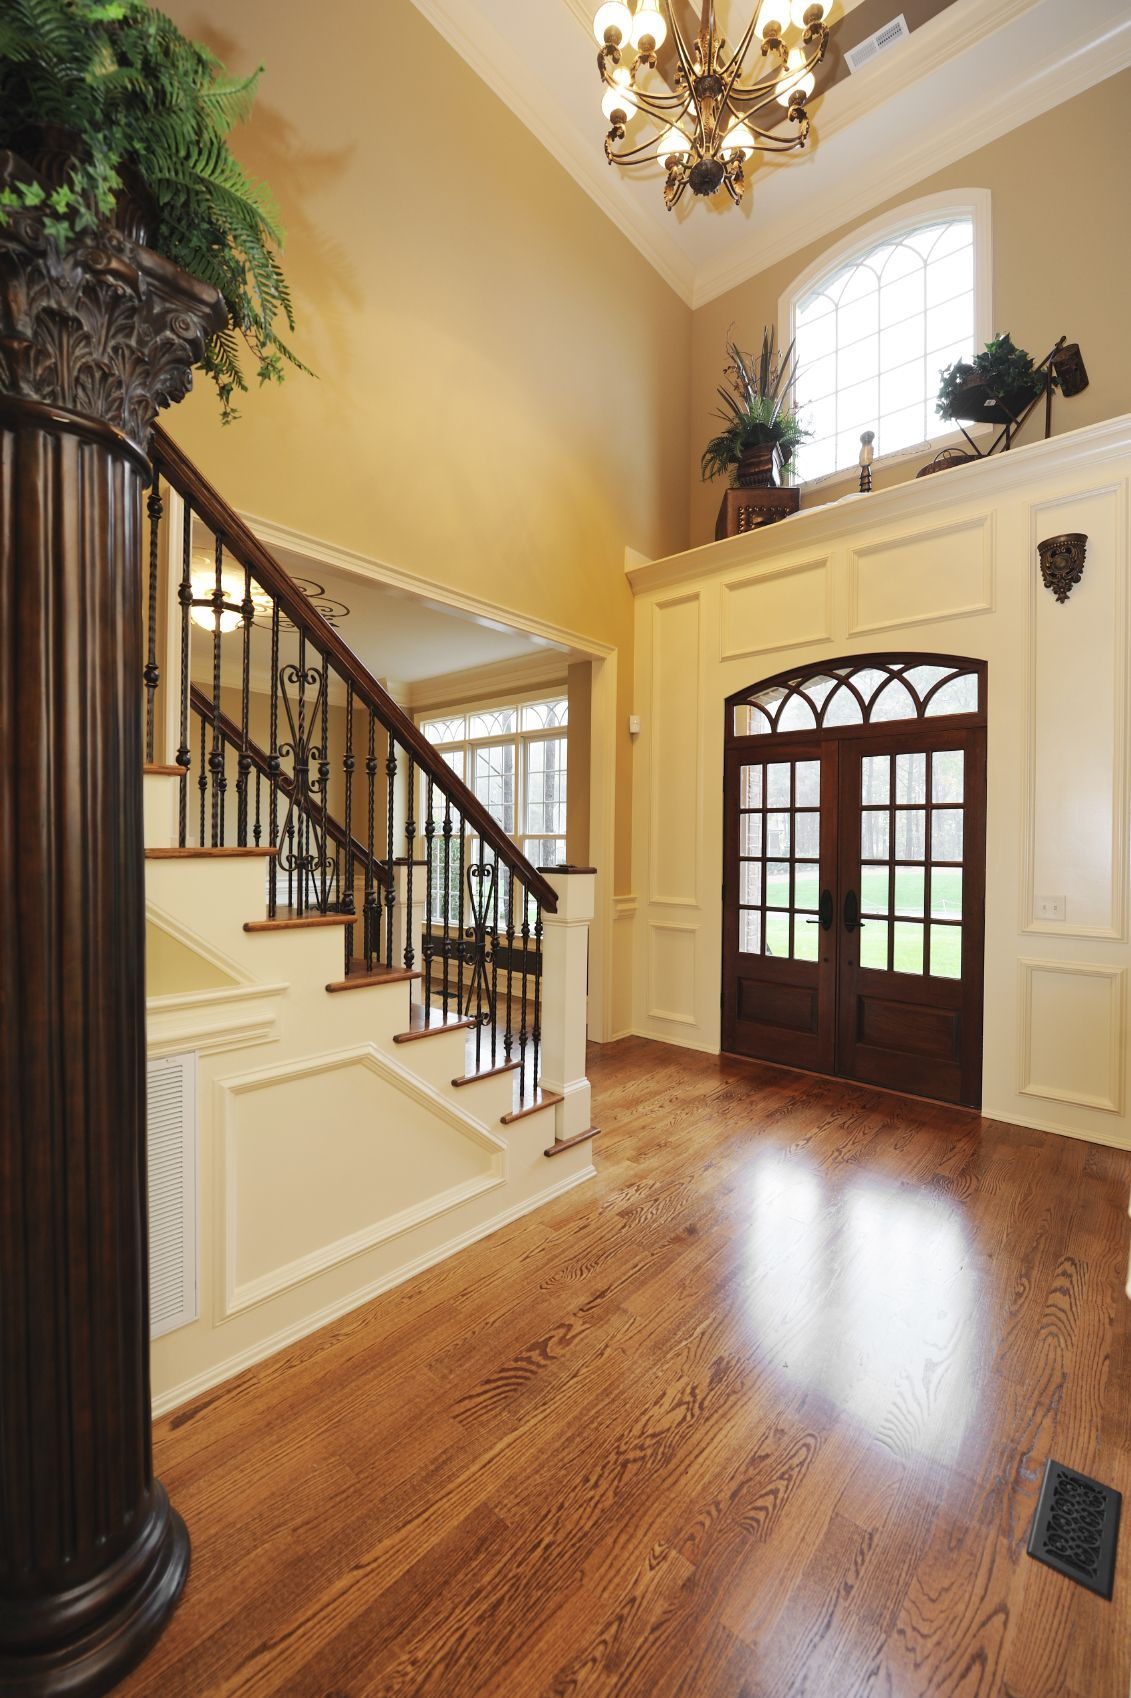 decorating a two story foyer ledge - Google Search | Hall ...